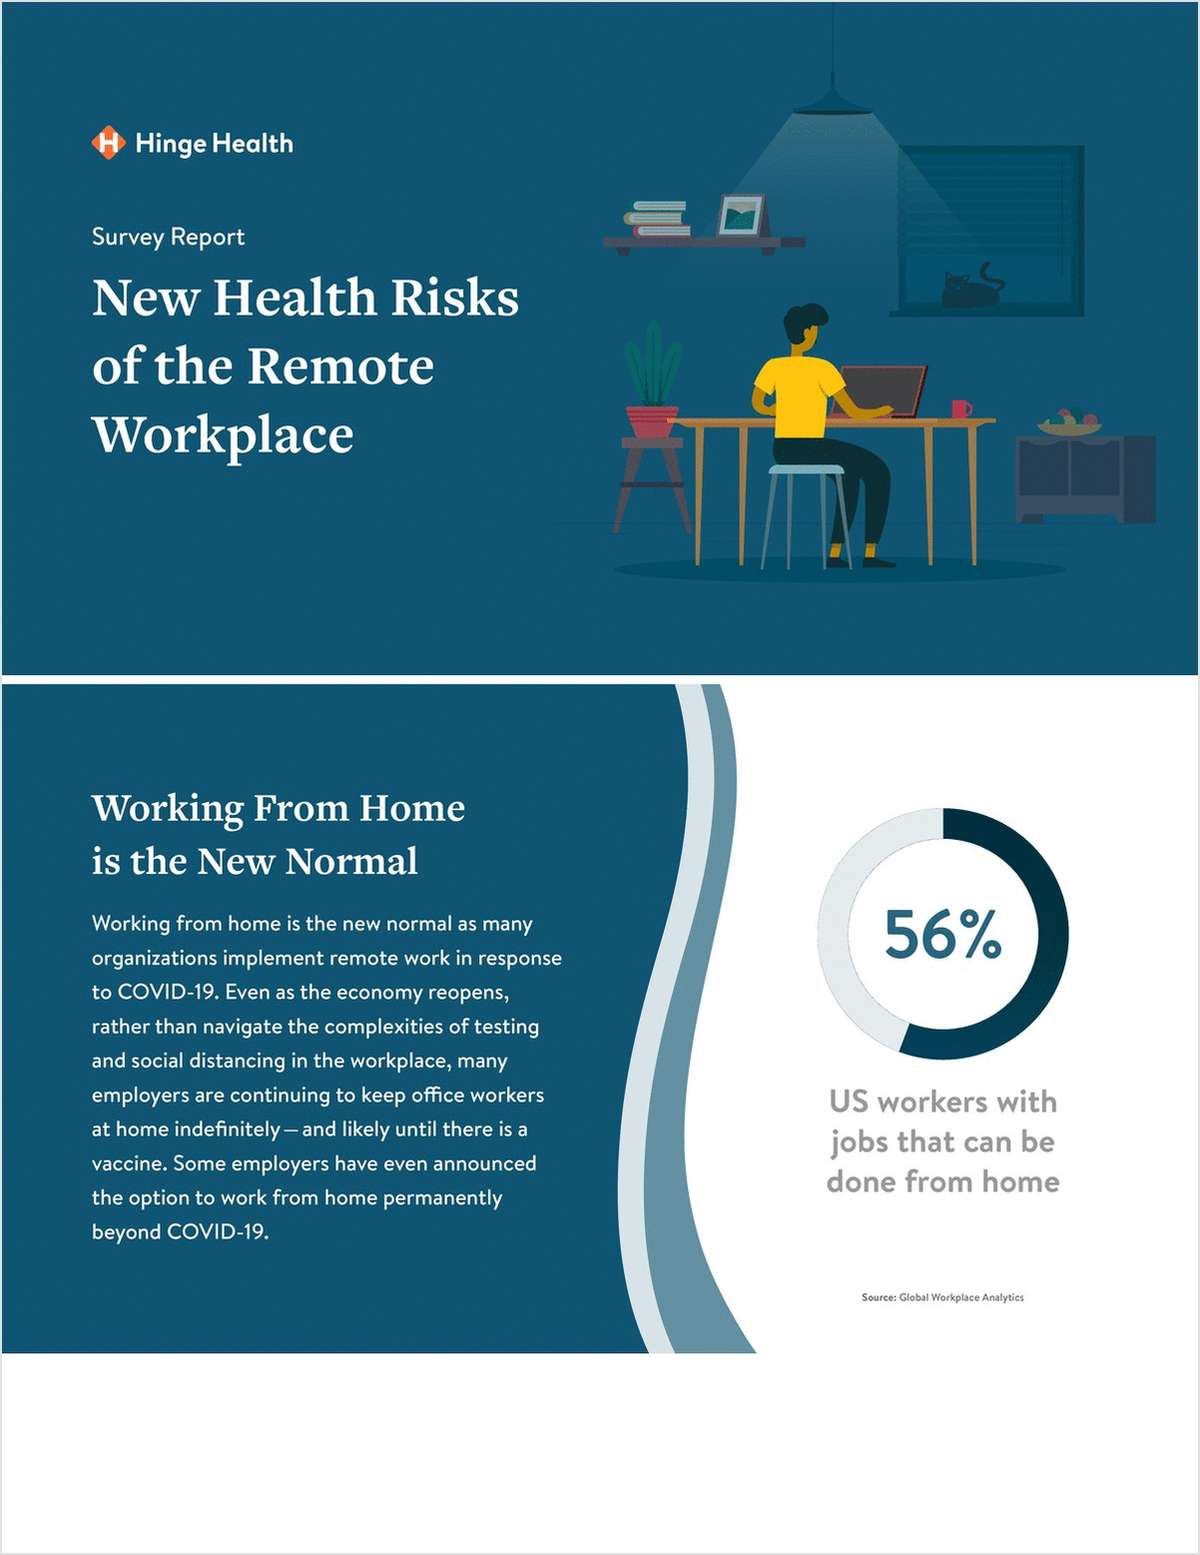 Survey Report: New Health Risks of the Remote Workplace